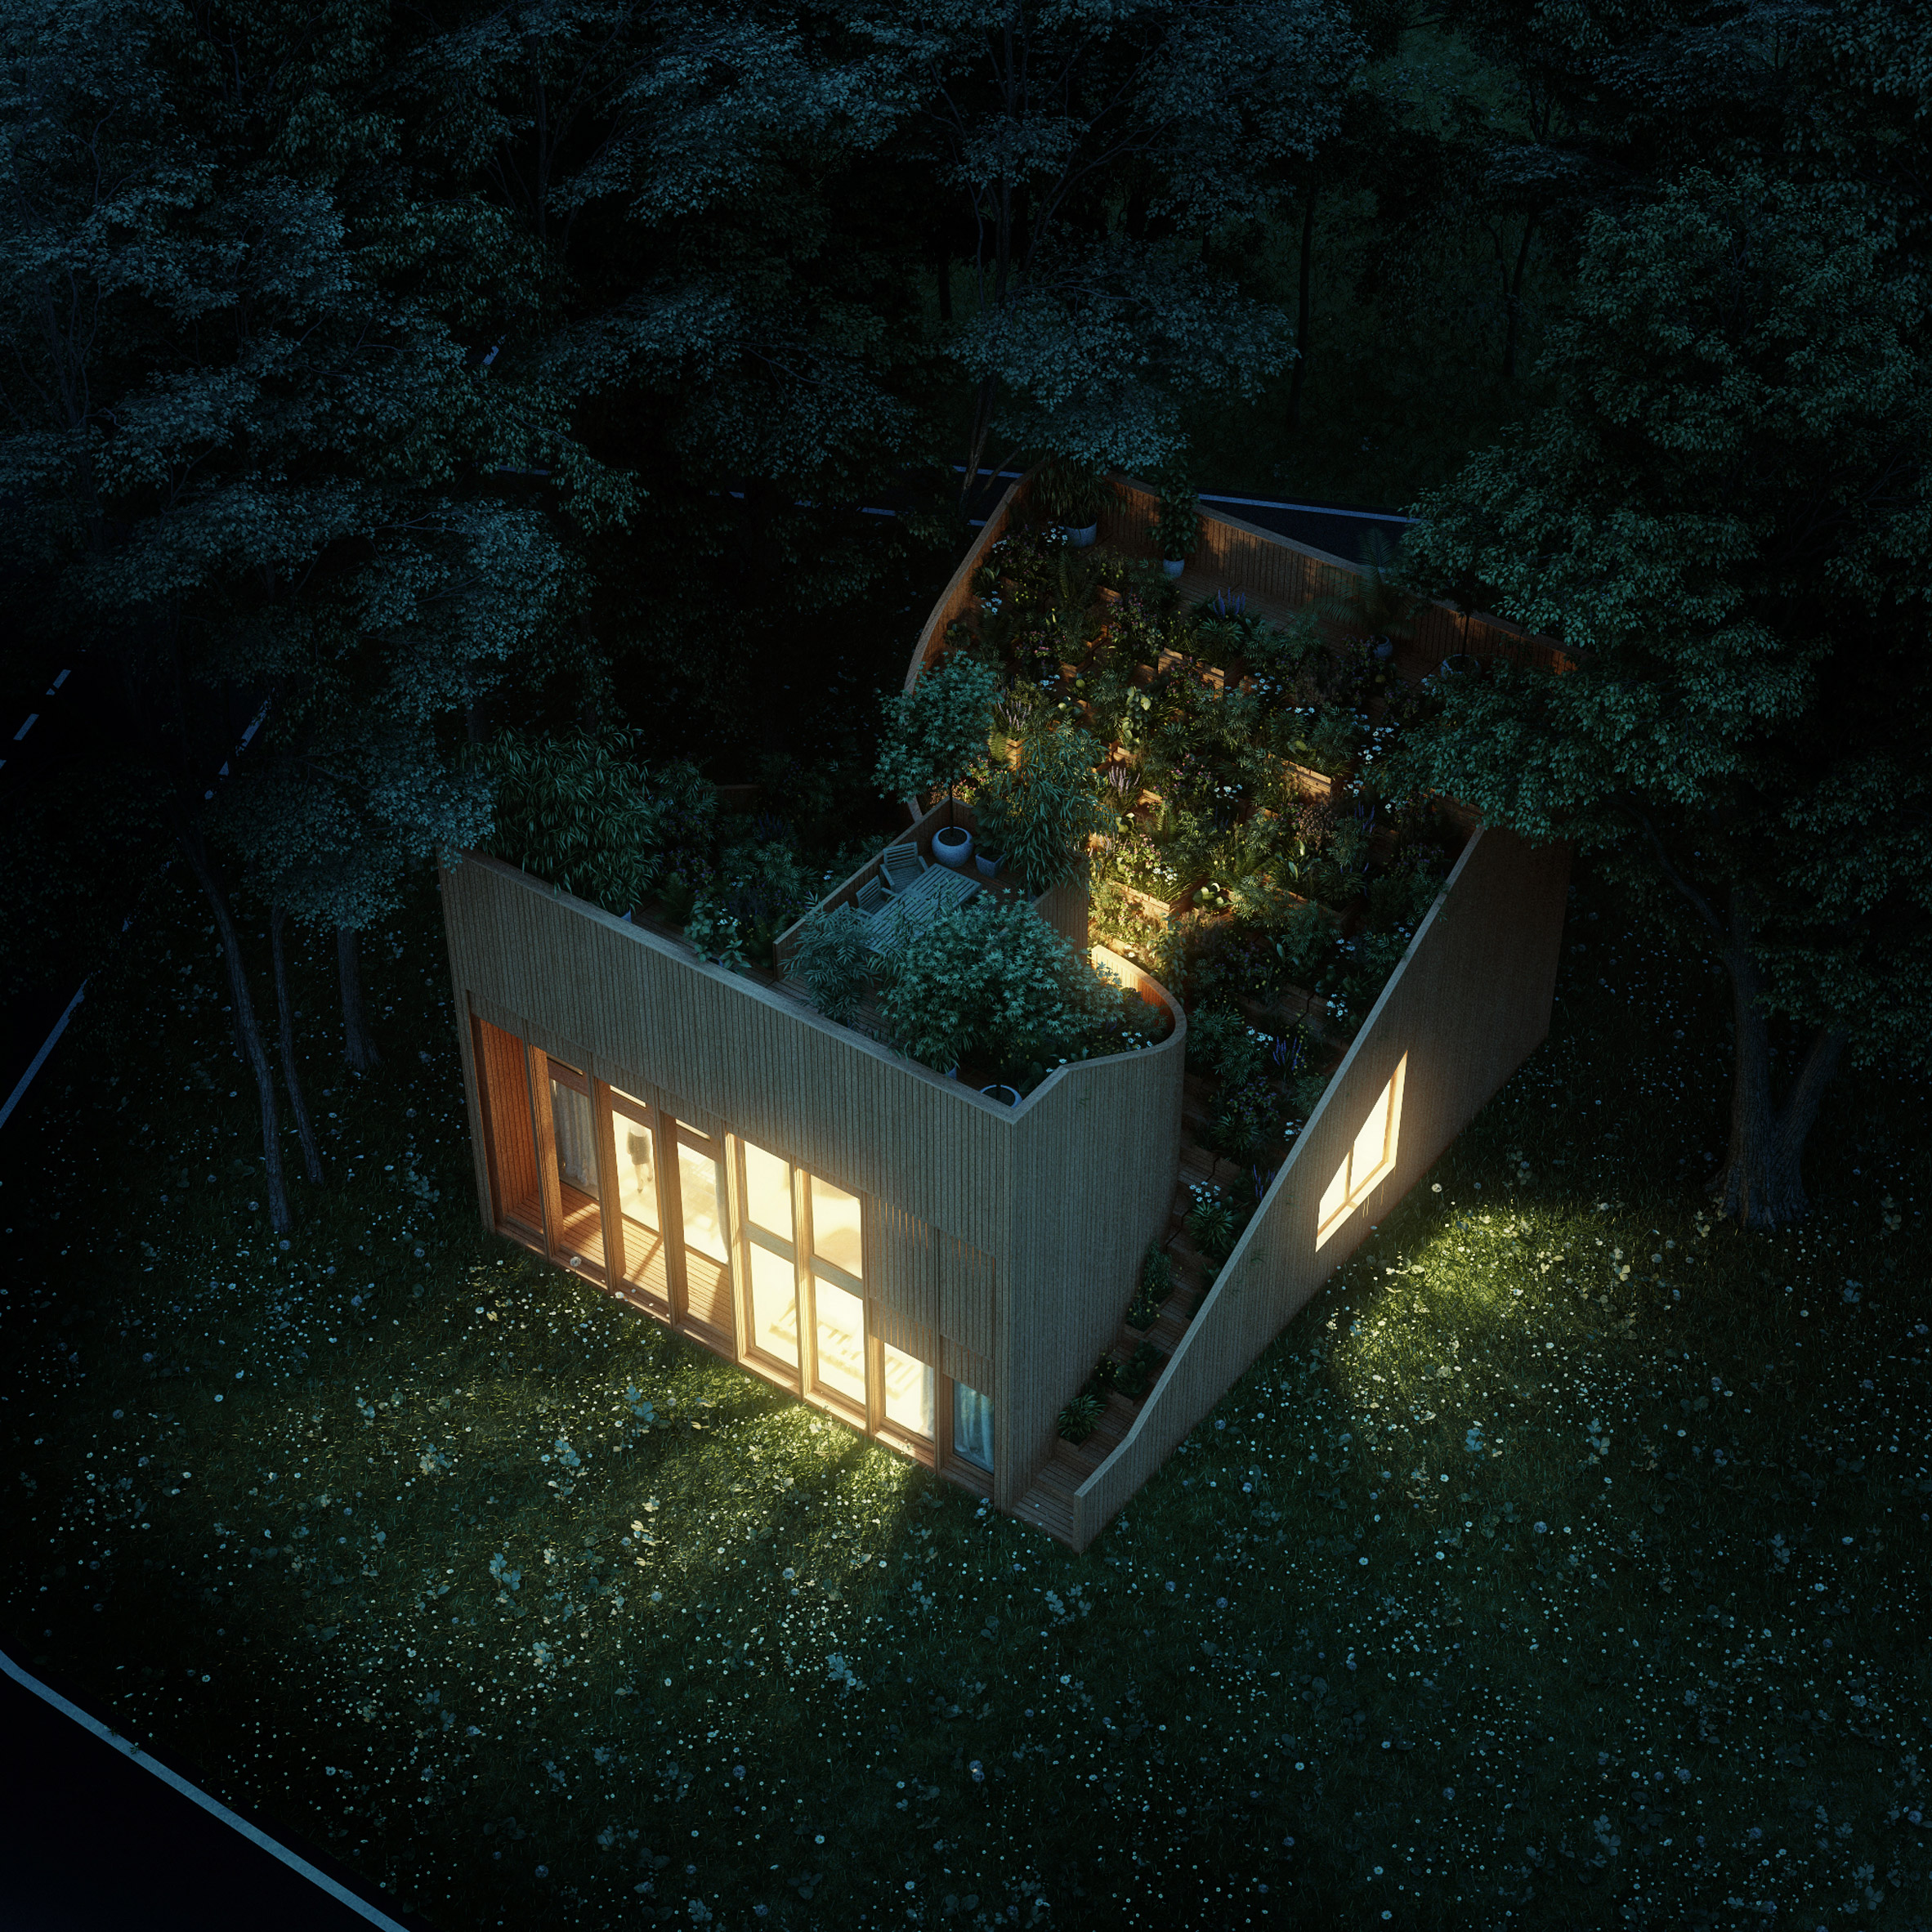 Self-sufficient Yin & Yang house incorporates gardens on its interlocking dual-aspect roof